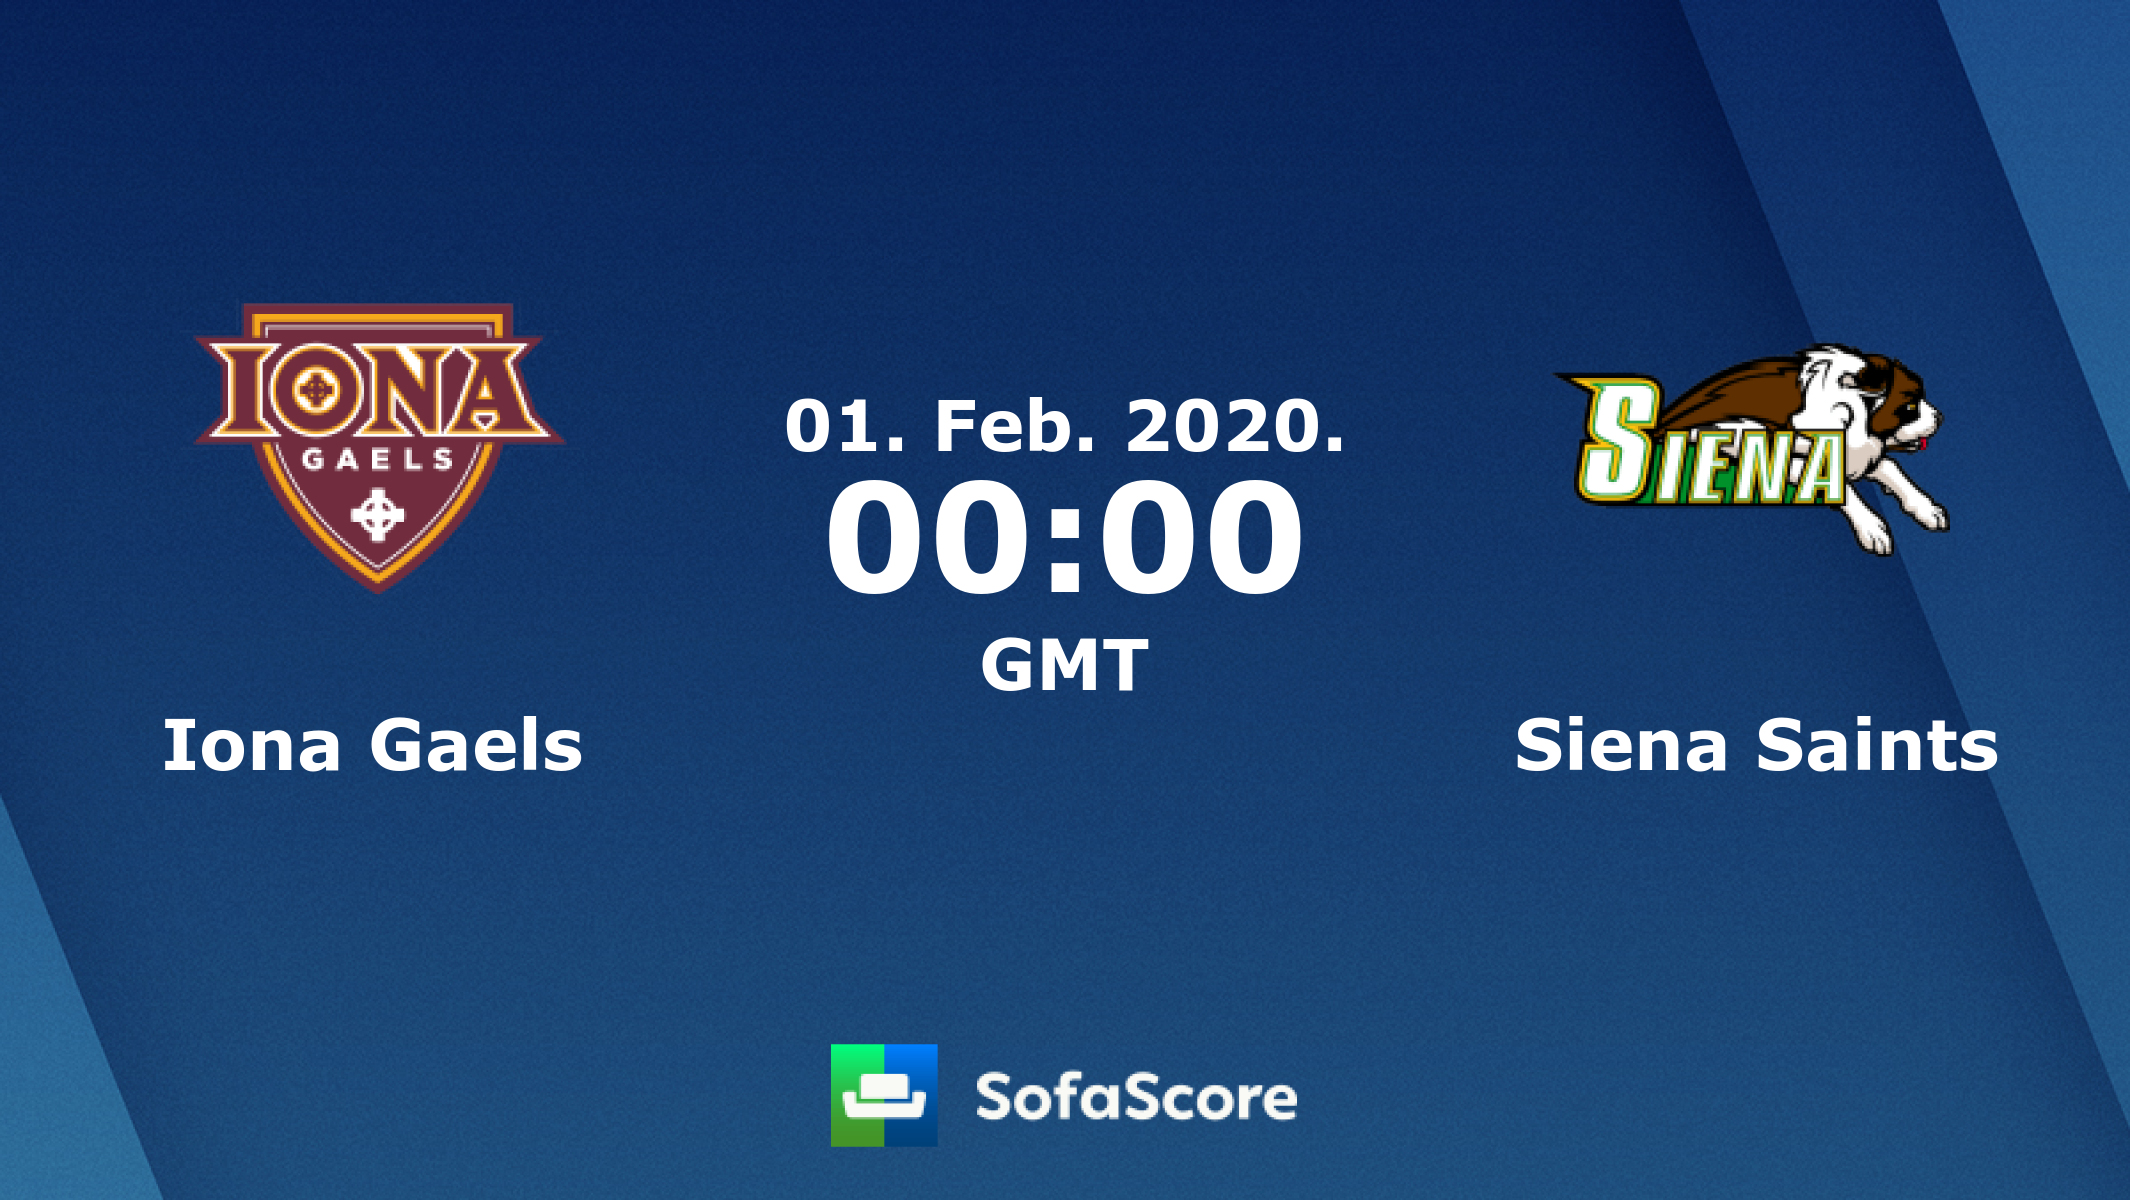 Iona Days Schedule Of Events 2020.Iona Gaels Siena Saints Live Score Video Stream And H2h